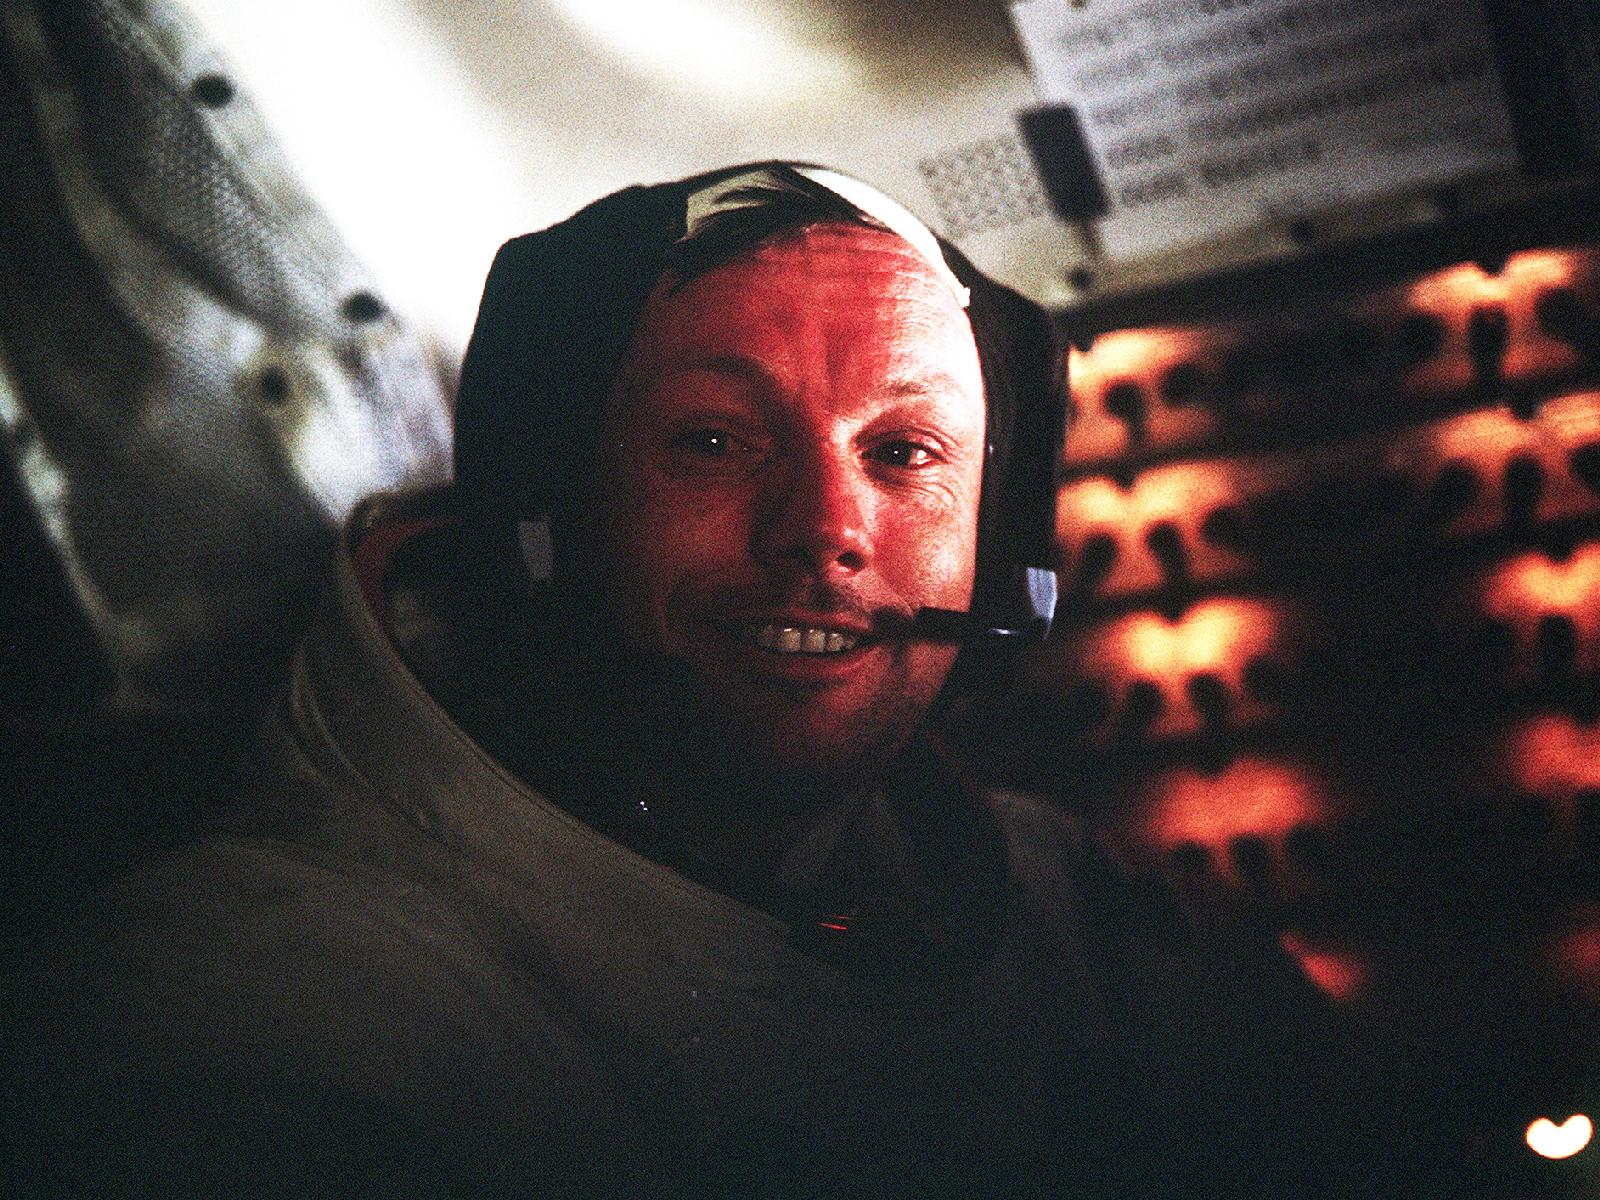 Neil Armstrong Memorial Service Thursday: Watch Live